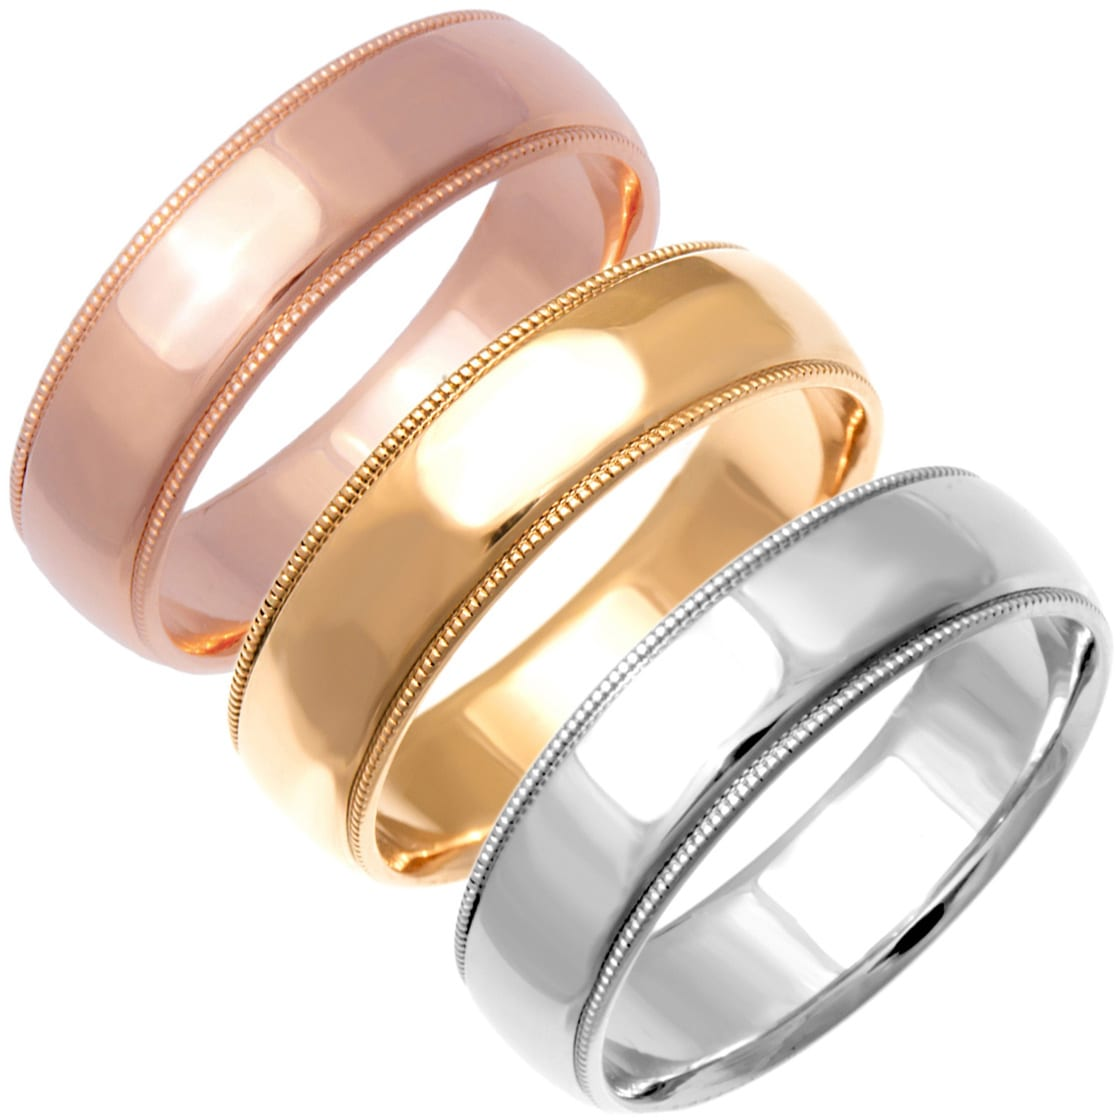 14k Gold Men's Comfort-fit 6mm Wedding Band